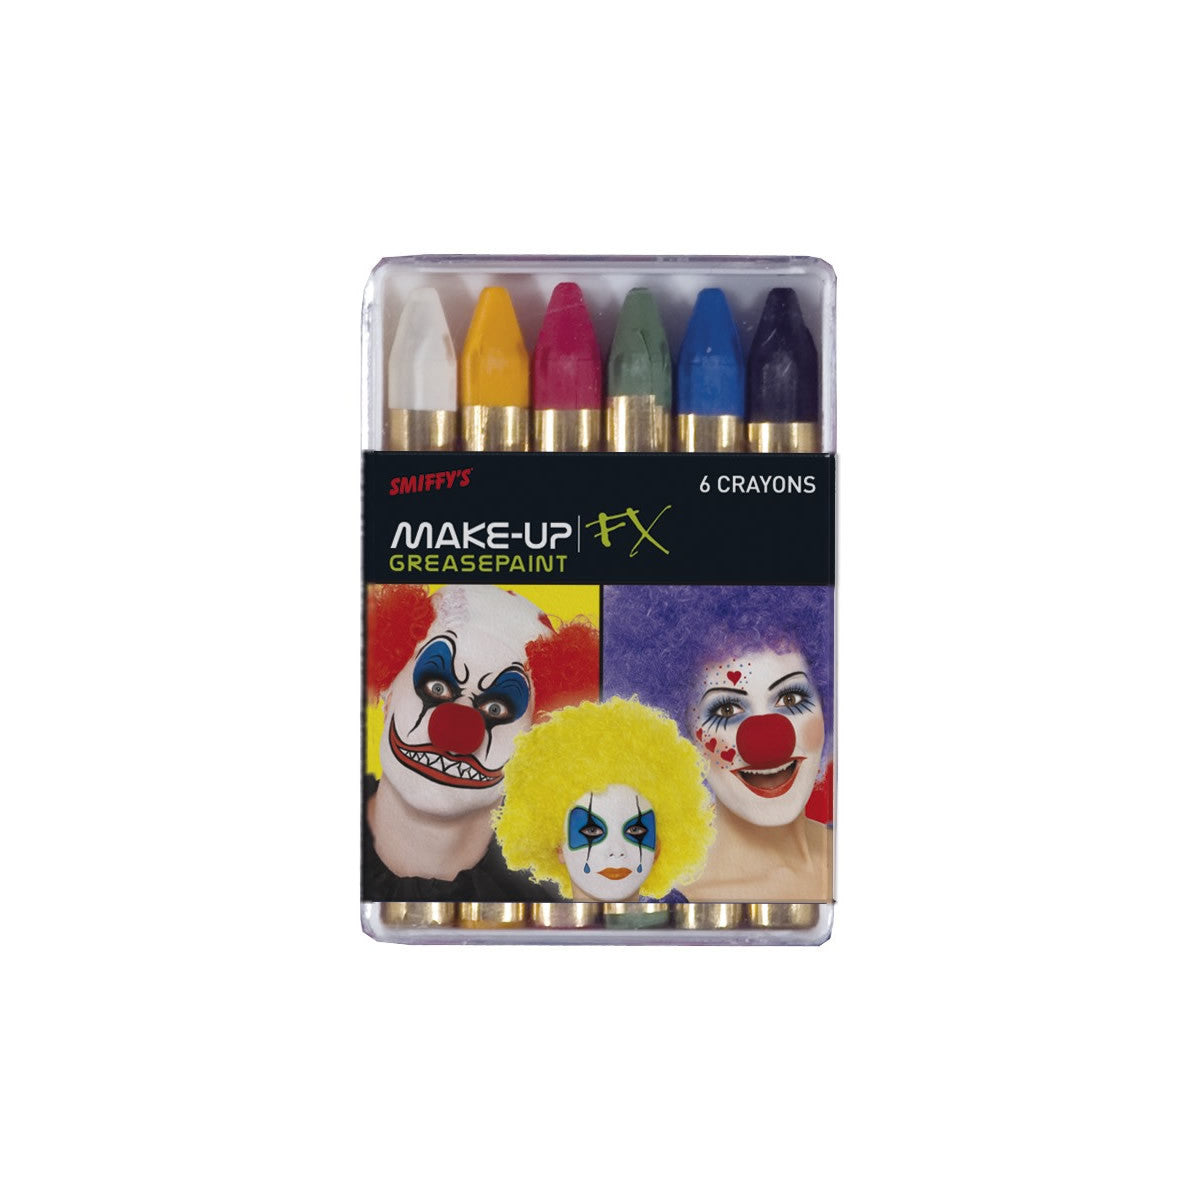 Make Up FX Greasepaint Face Paint Crayons - Red Carpet FX - Professional Makeup